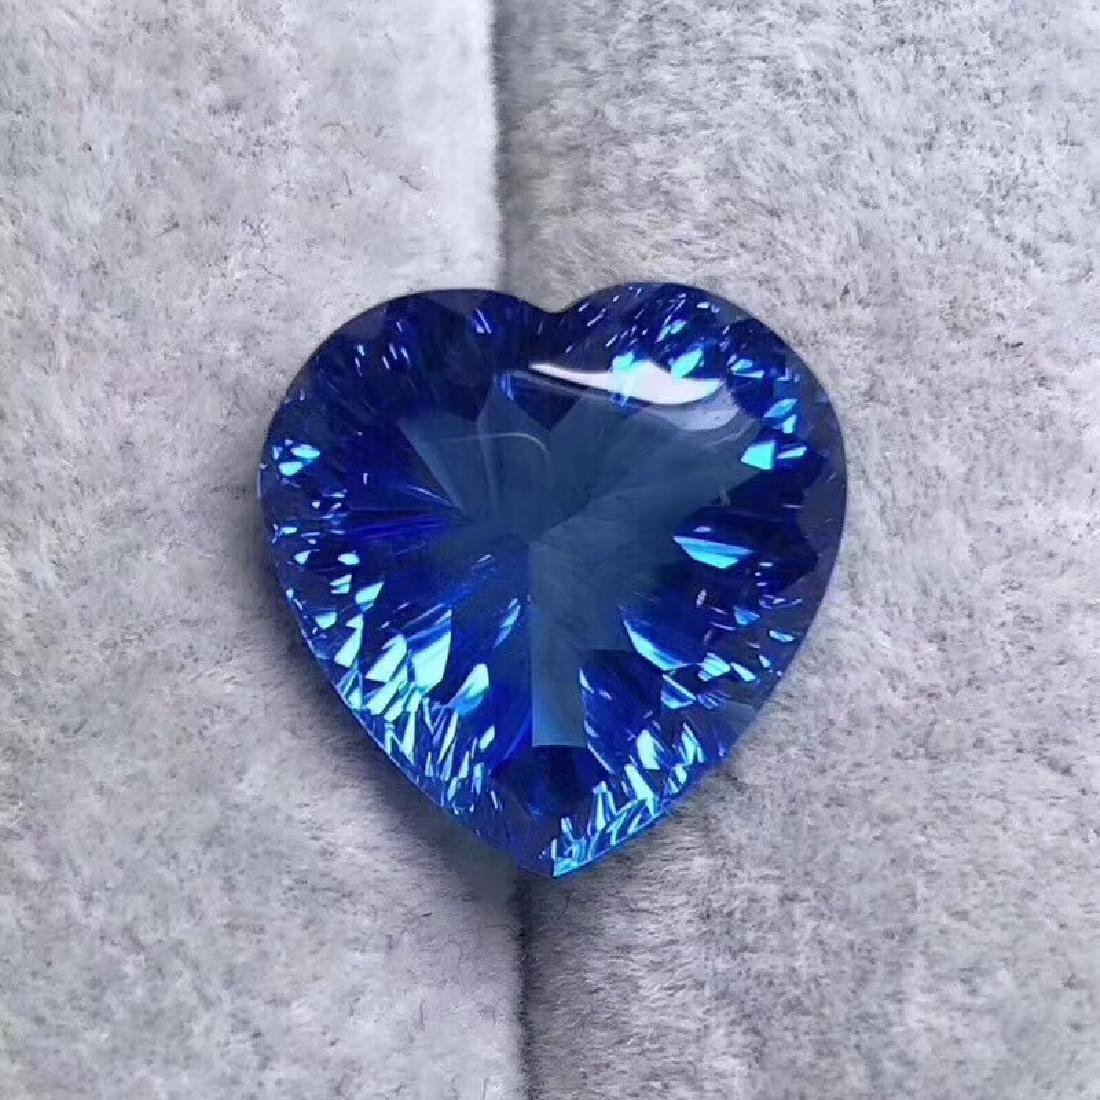 19.64 ct Topaz 16.3*16.2 mm Heart Cut